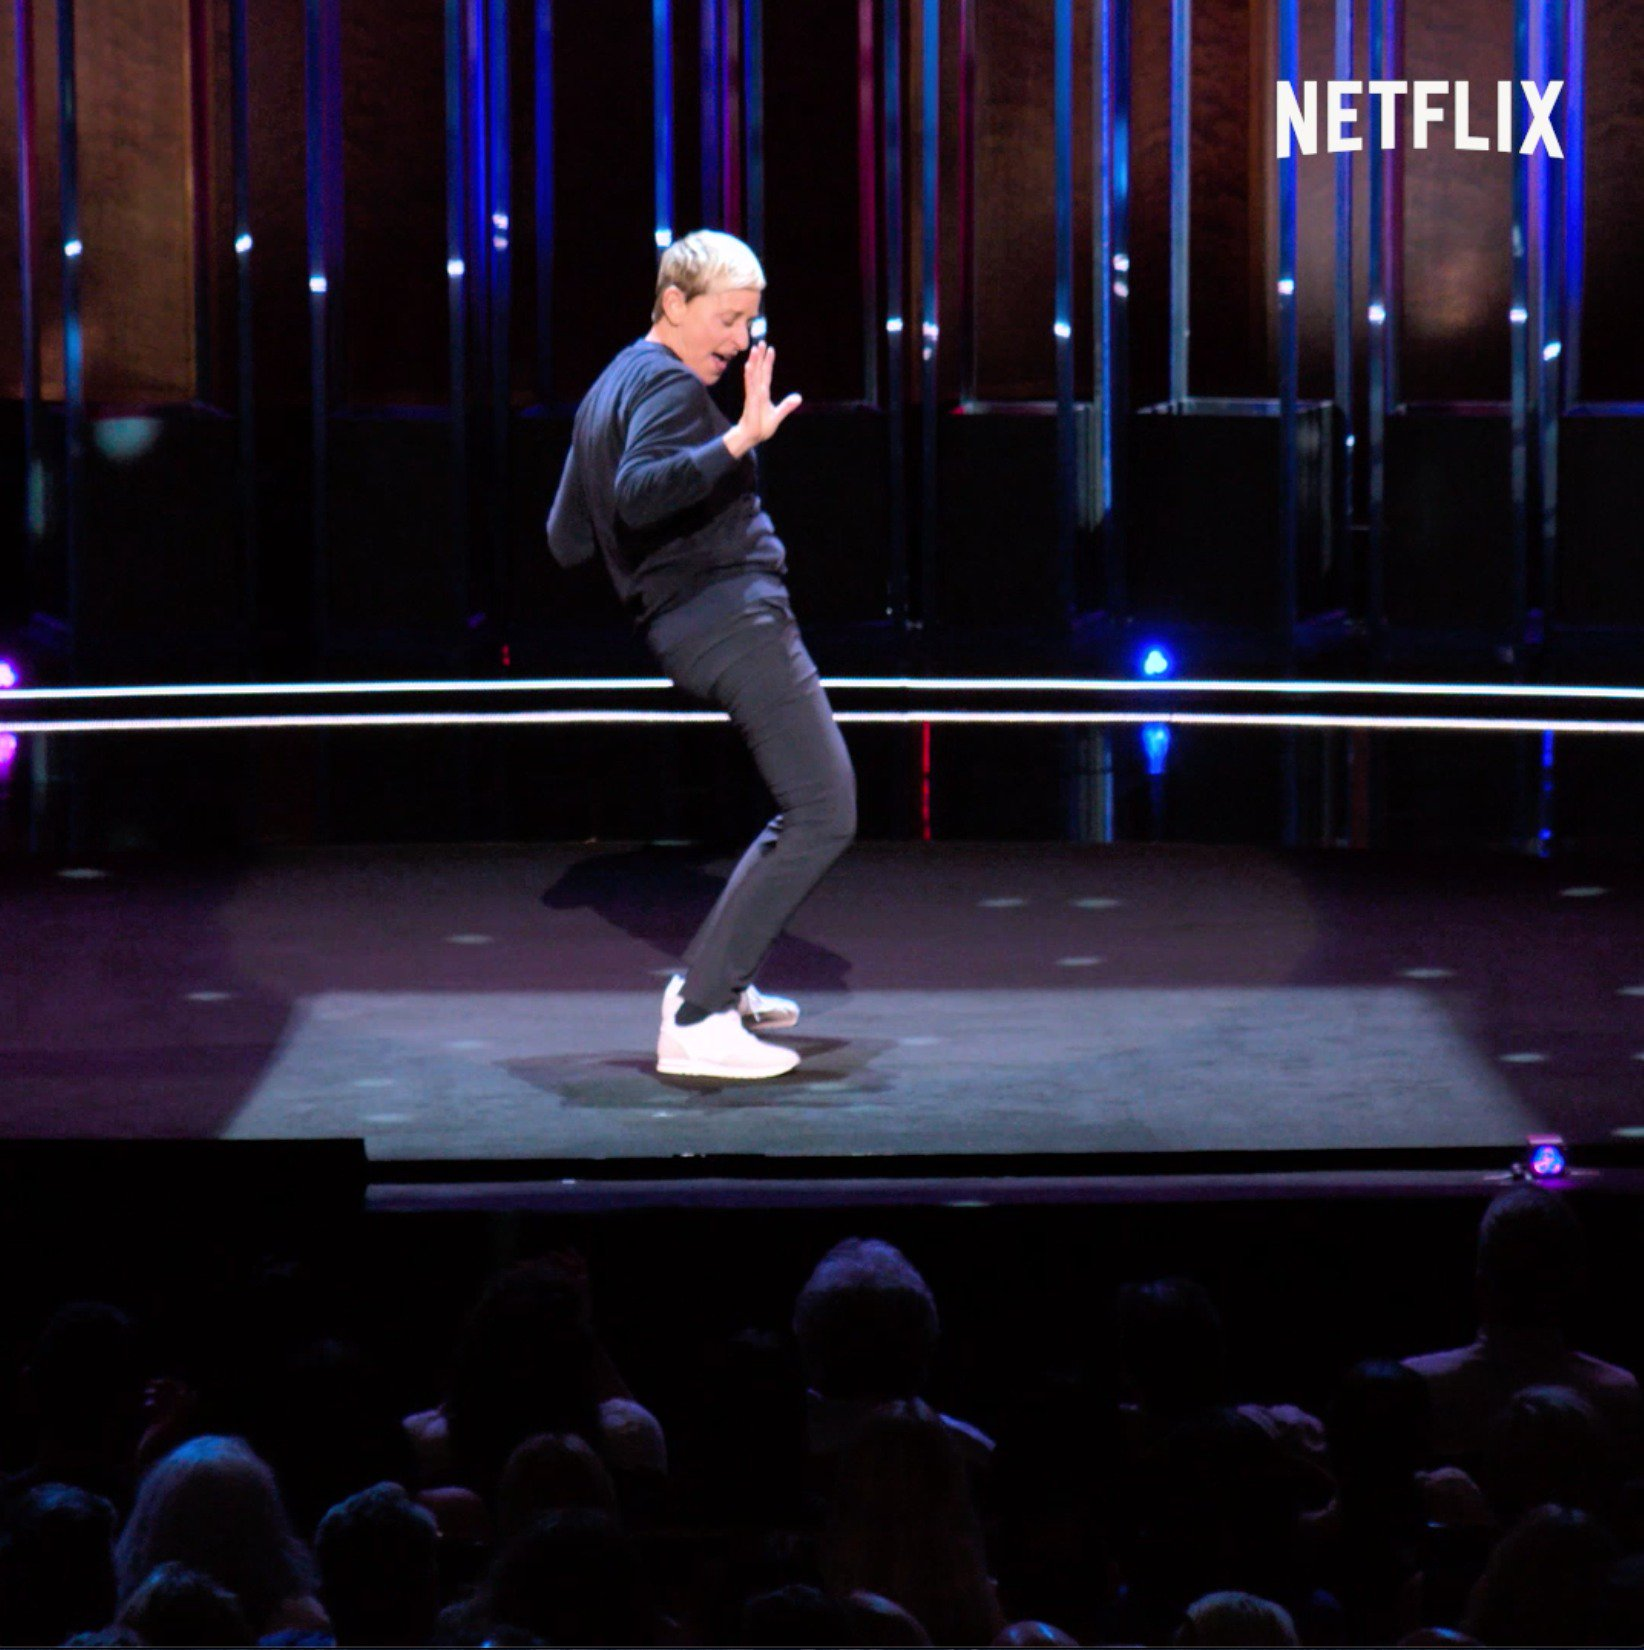 Thanks for all your wonderful posts about Relatable. They make me feel like dancing. @NetflixIsAJoke https://t.co/o3rgHmktp8